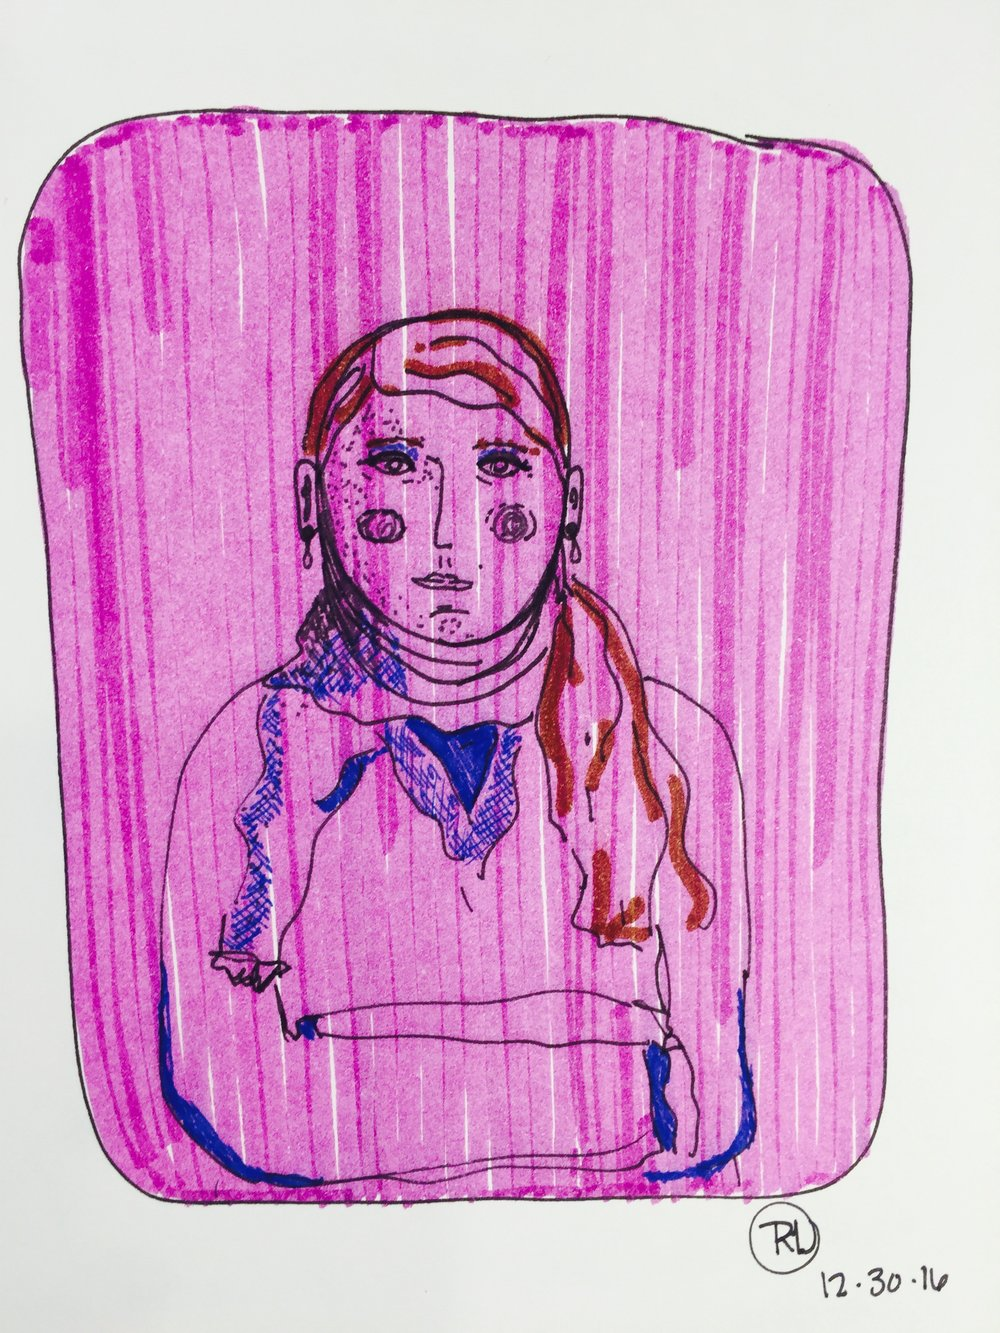 flight attendant - using my daughter's Crayola markers + Stabilo pt 88 pen